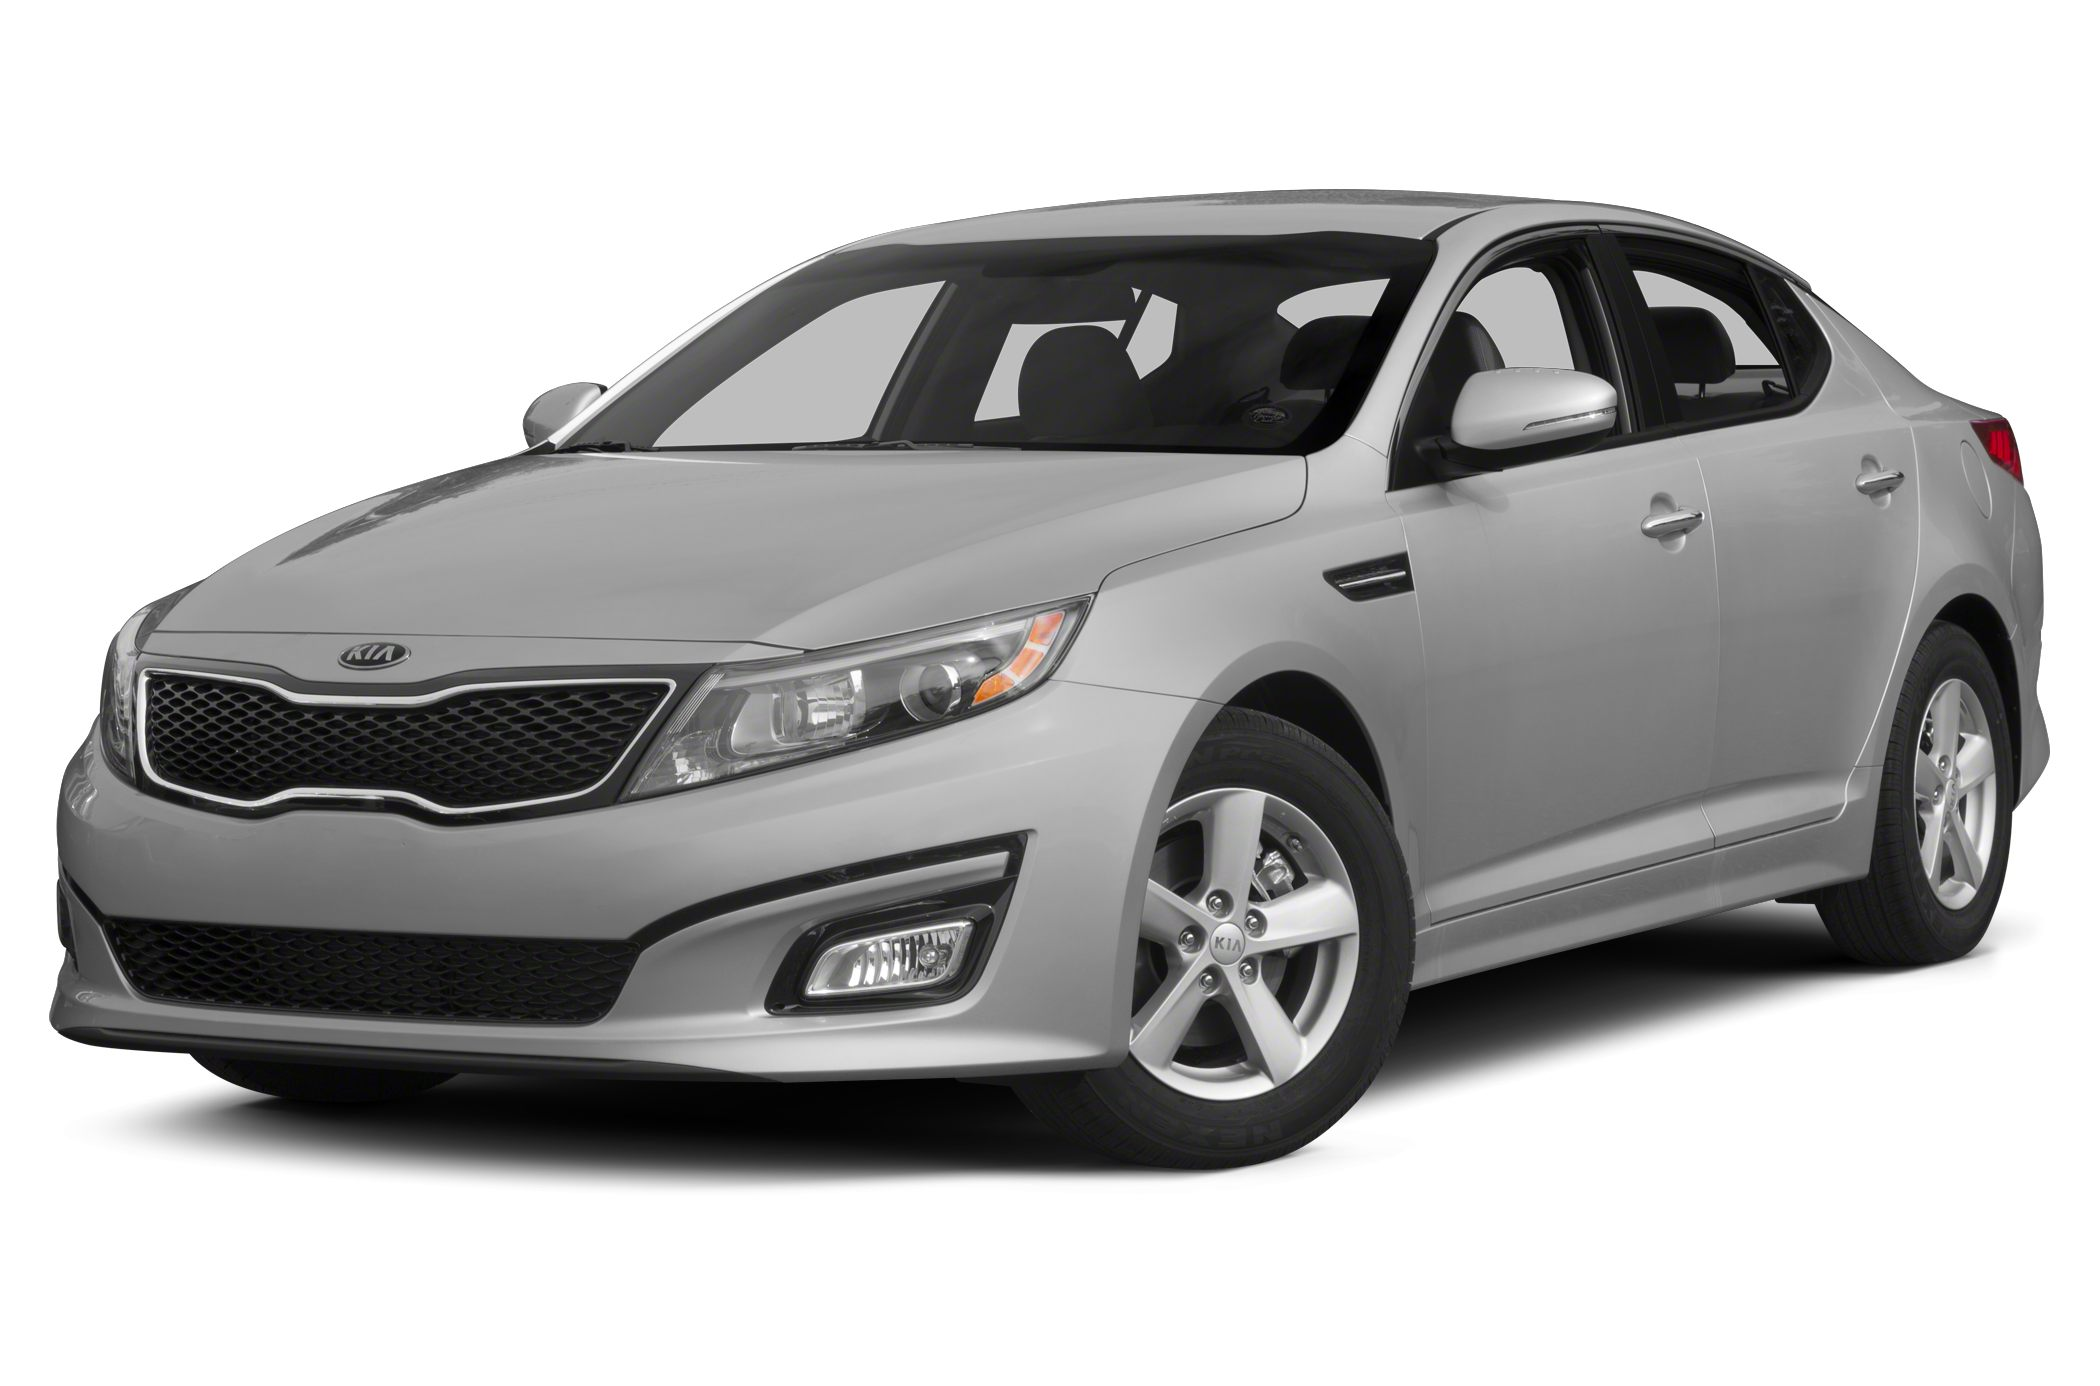 2015 Kia Optima LX Miles 36059Color Gray Stock K17286A VIN 5XXGM4A78FG516068